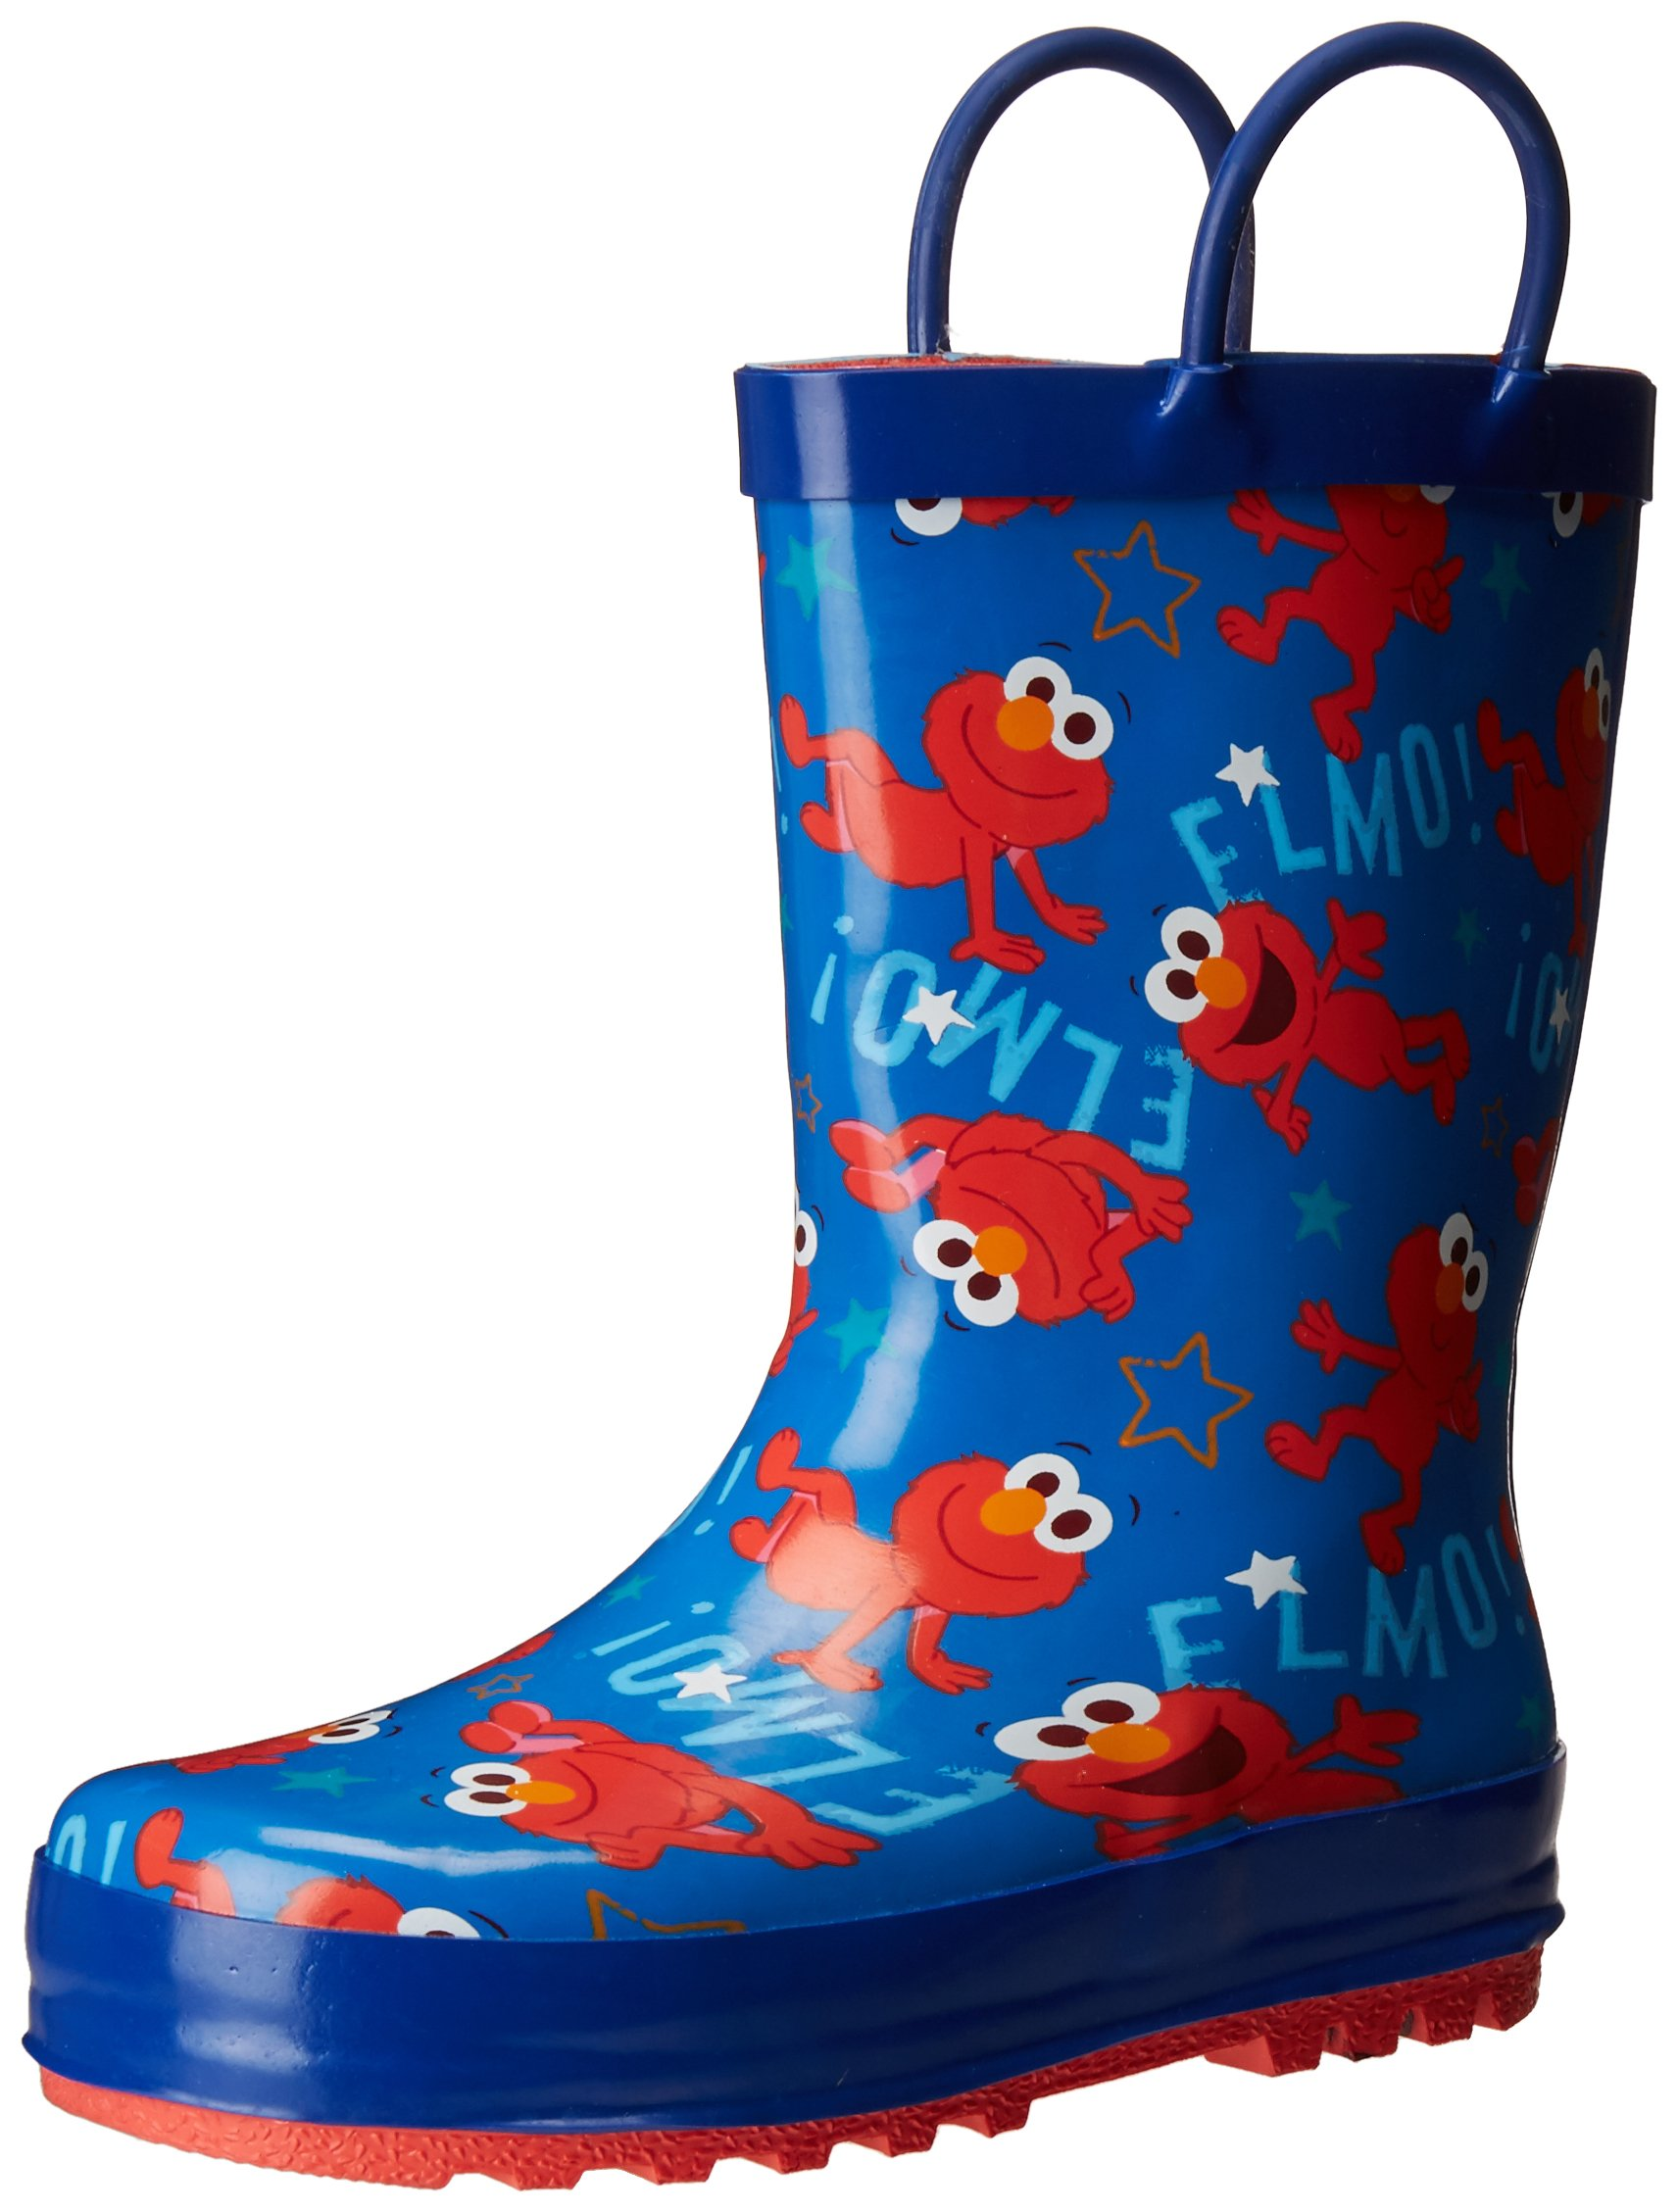 Sesame Street Boys' Kid's Character Licensed Rain Boot, Blue, Dual Shoe Size 7/8 Child US Toddler